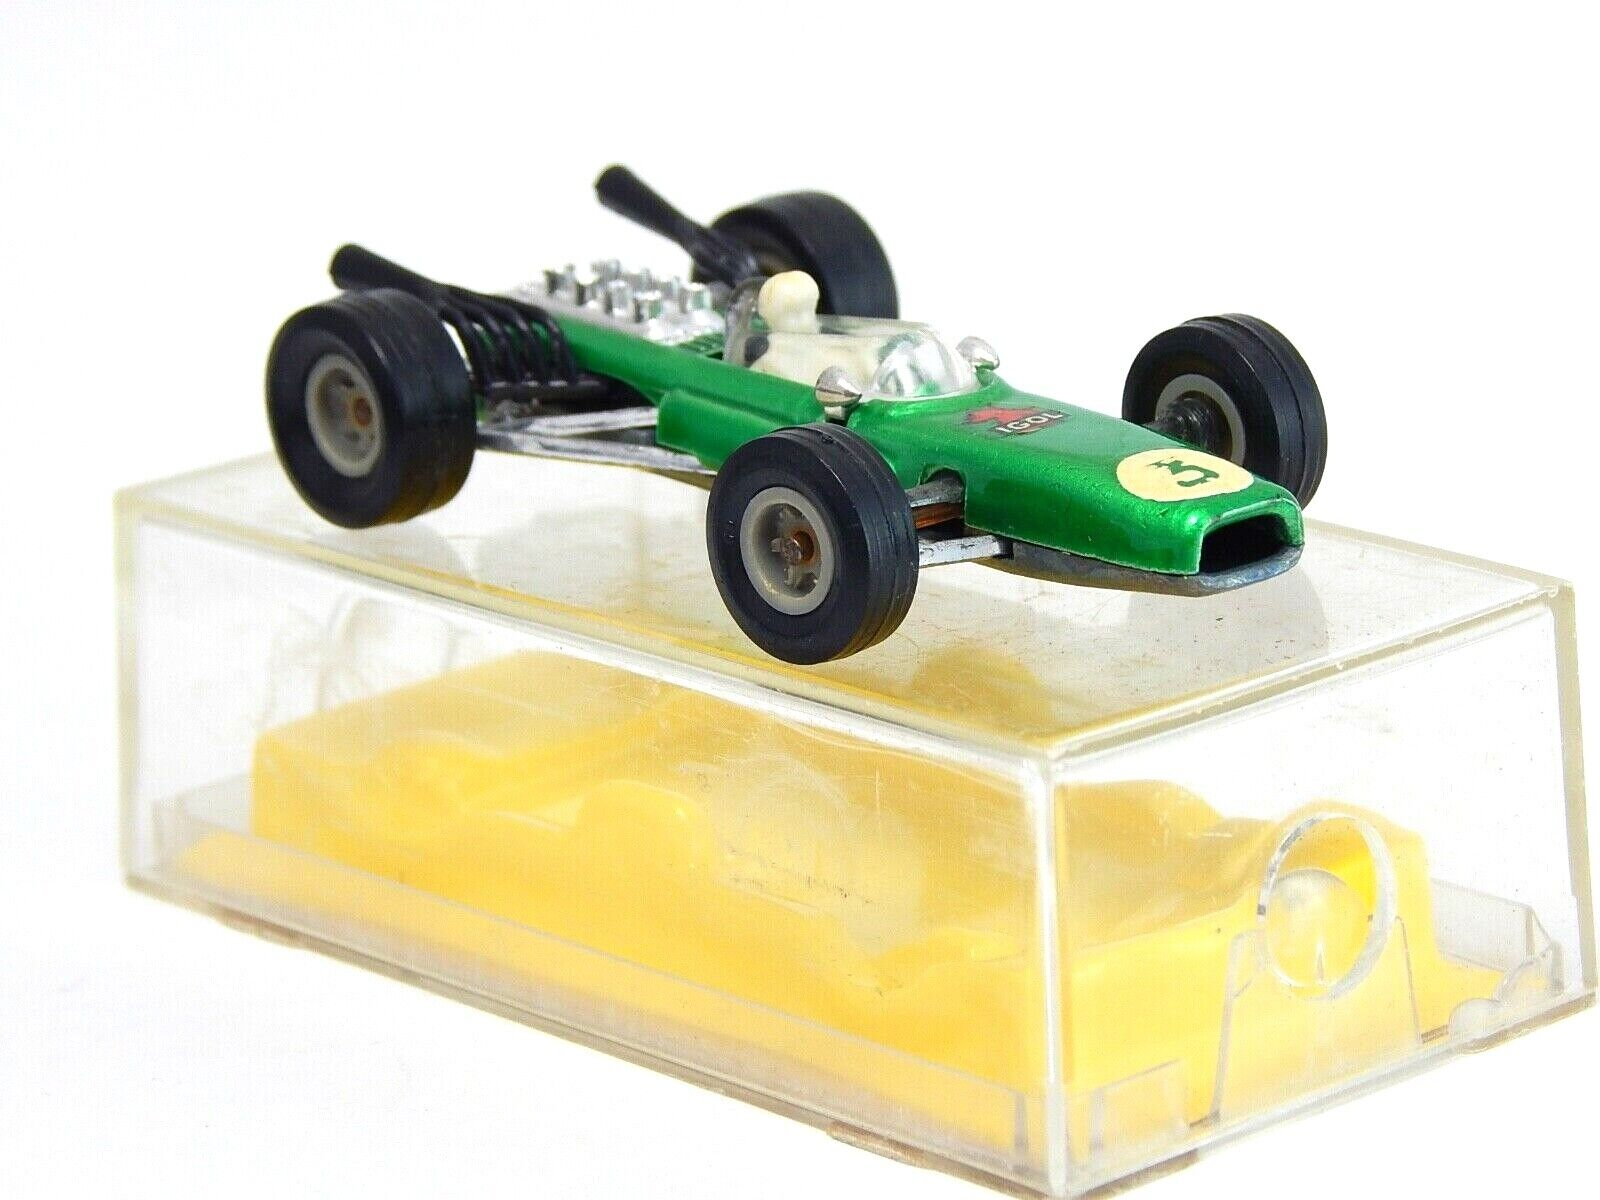 Racing voiture Repco vert   3 Majorette 226 1 55 Made in France with Plastic Box  sports chauds